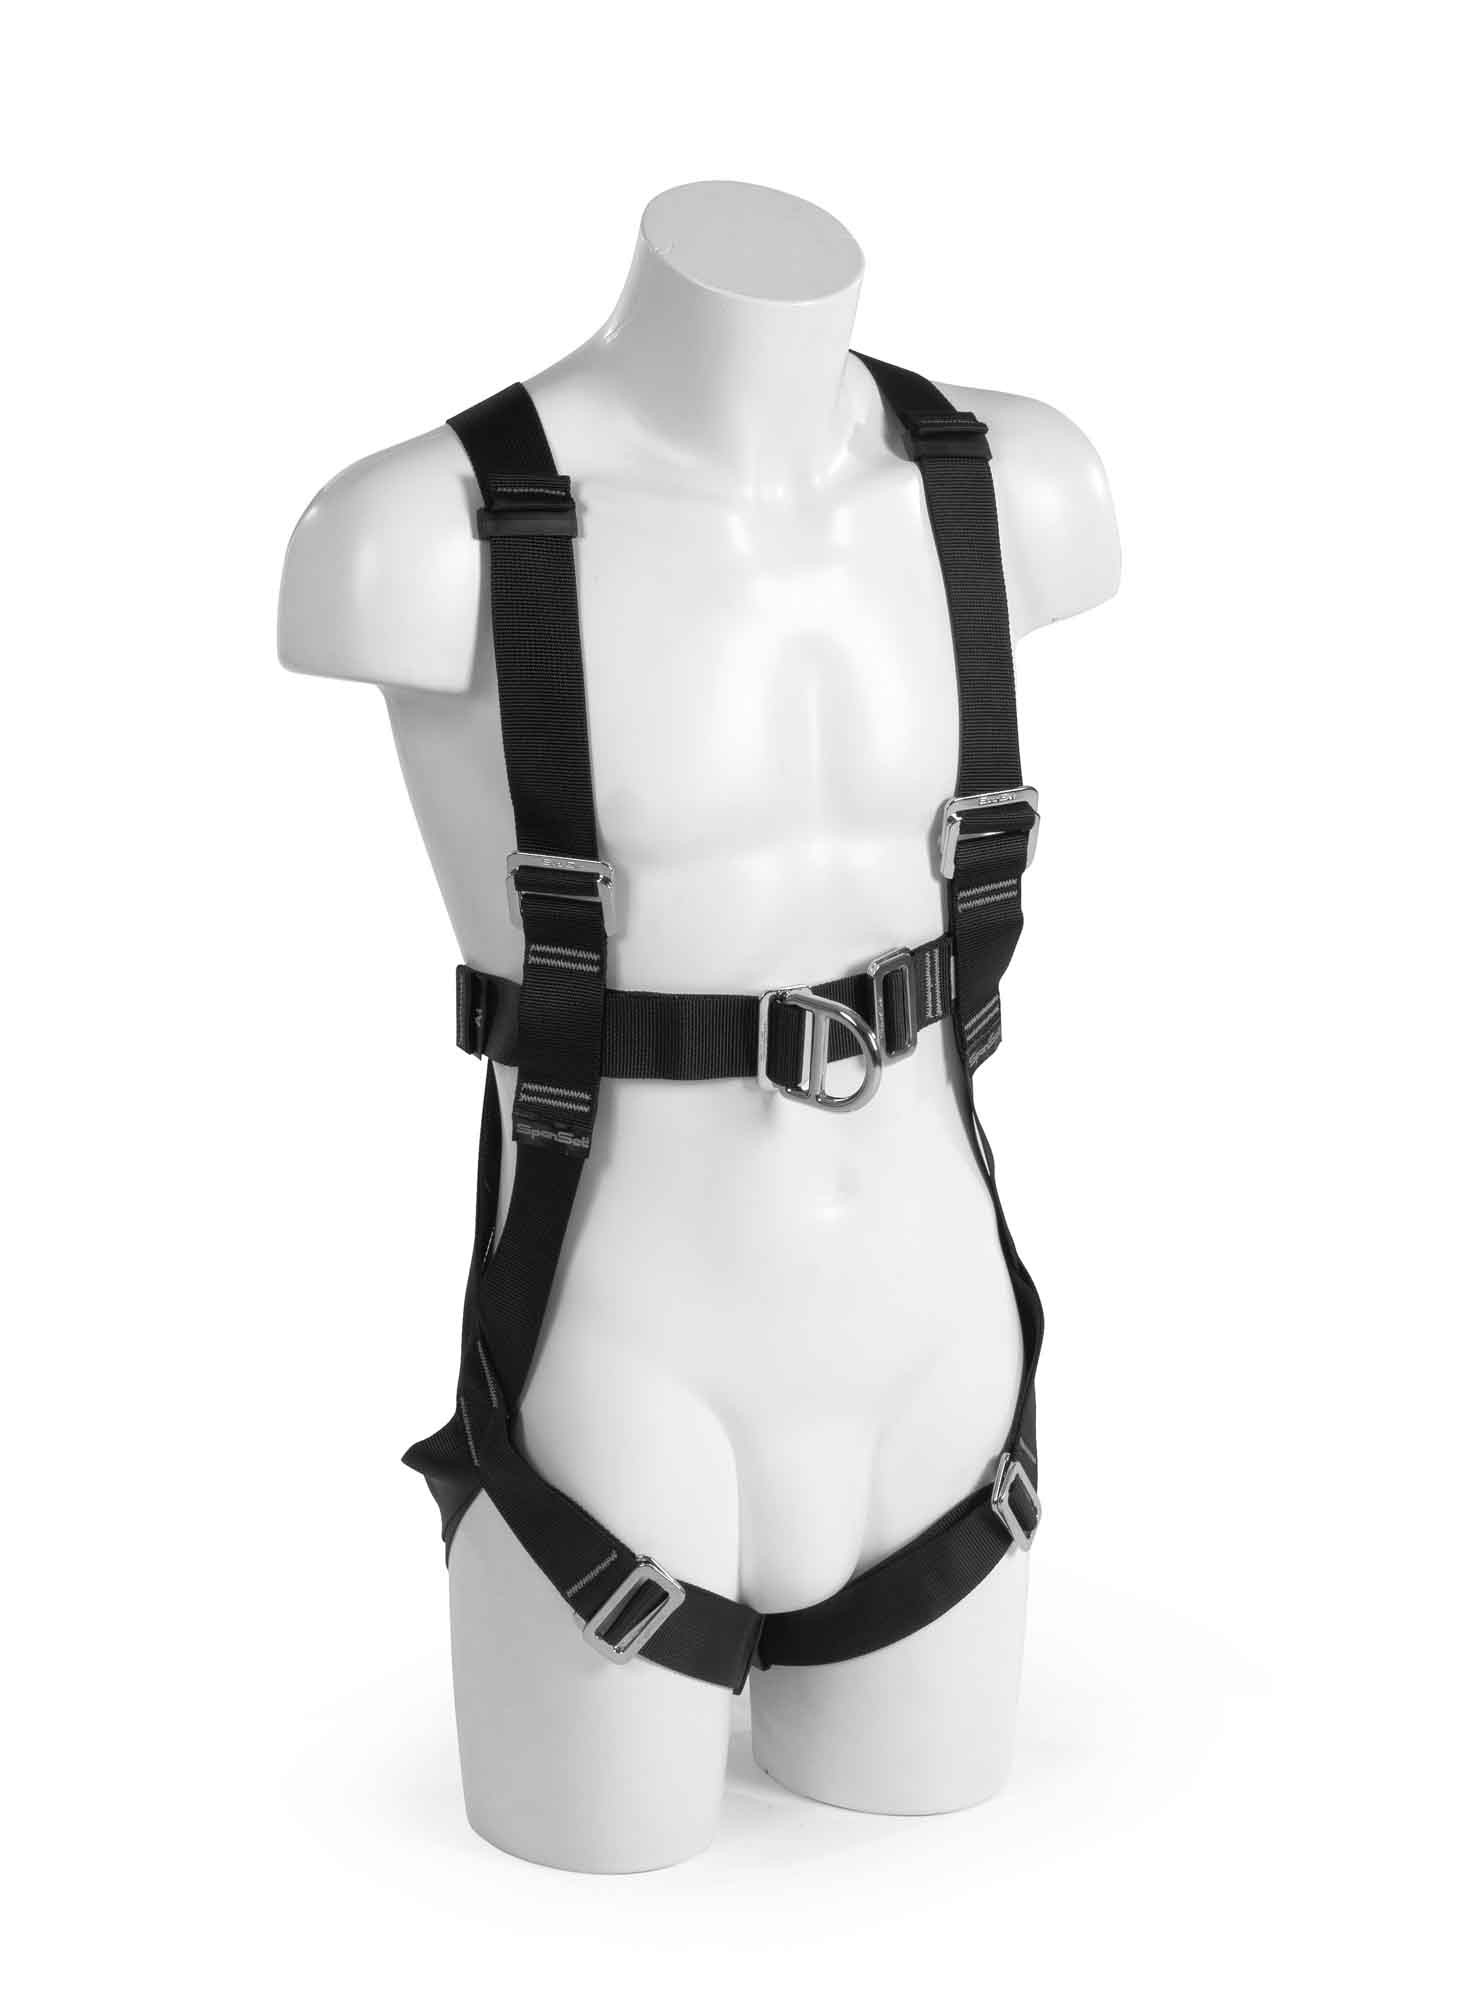 Spanset - X-Harness 2 MS